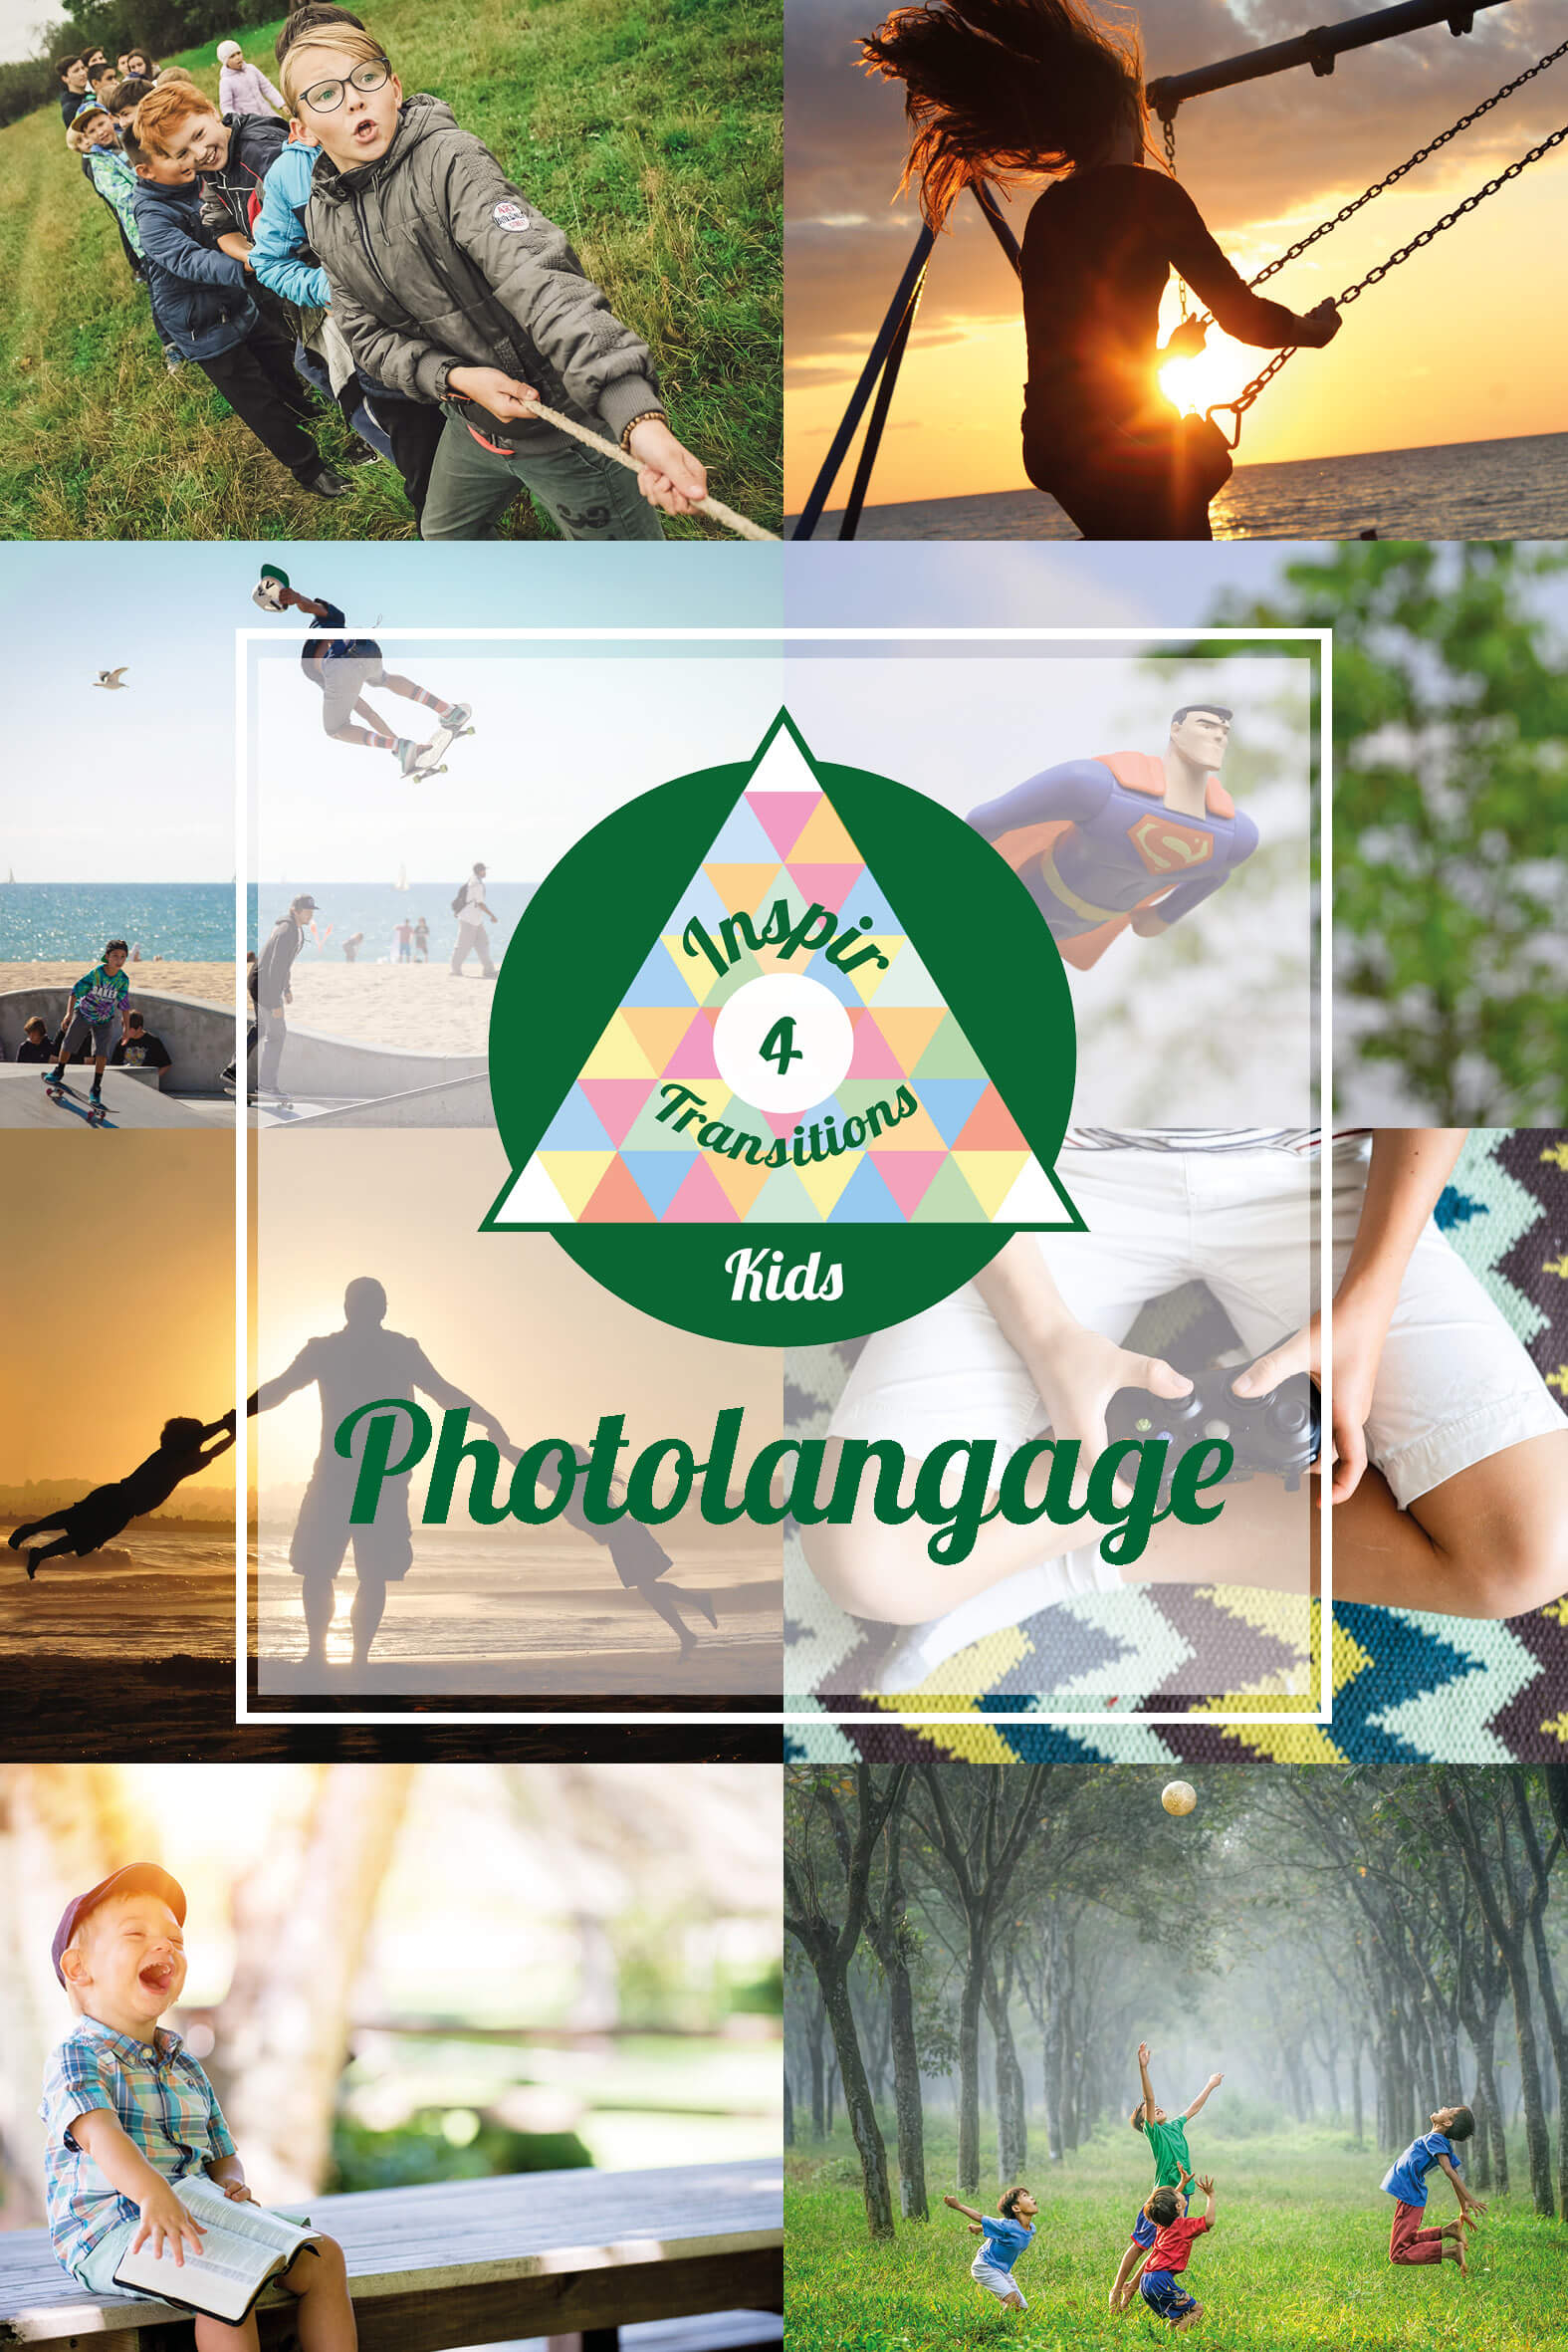 photo langage inspire4transitions kids outil relationnel